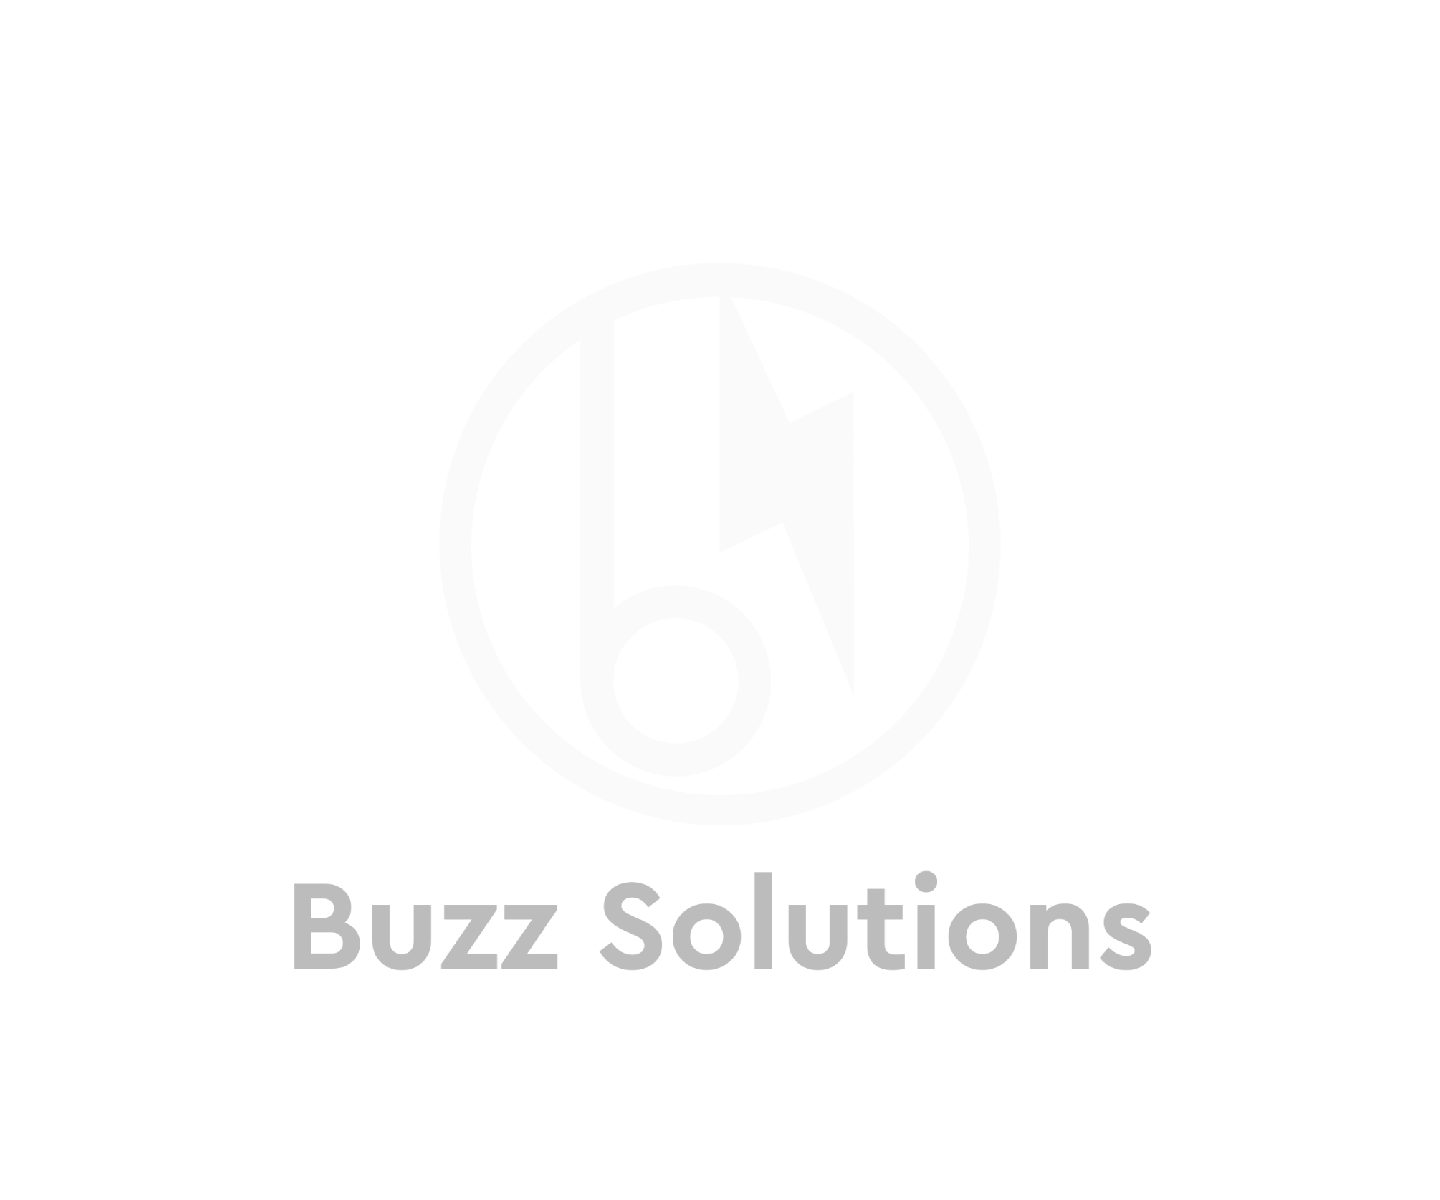 Buzz Solutions